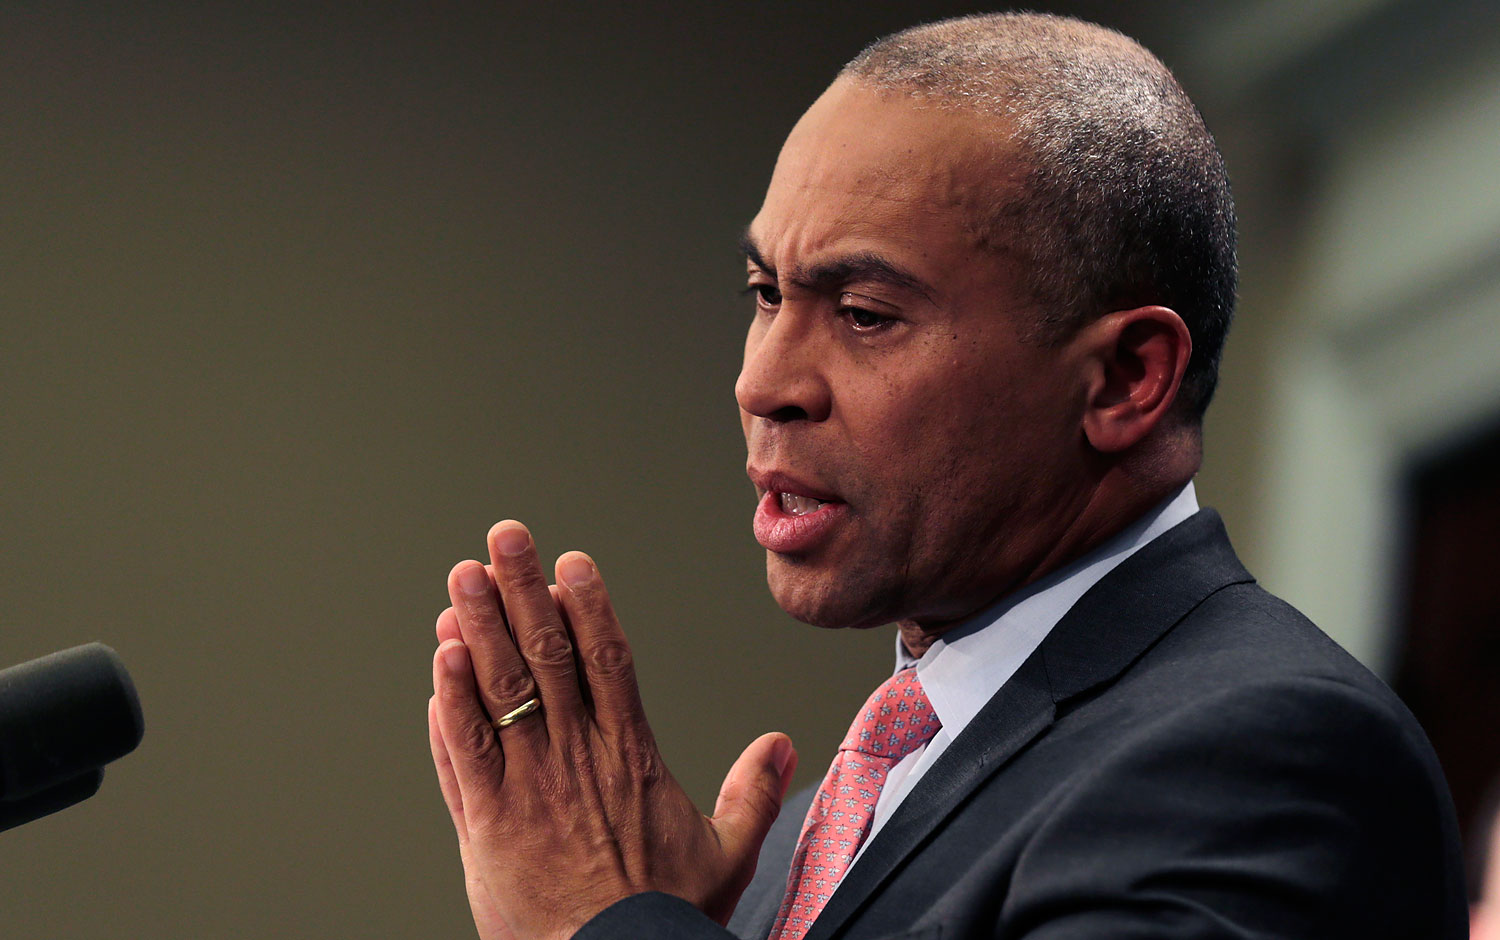 Mass. Gov. Deval Patrick gestures during a news conference at the Statehouse in Boston, Jan. 22, 2014.